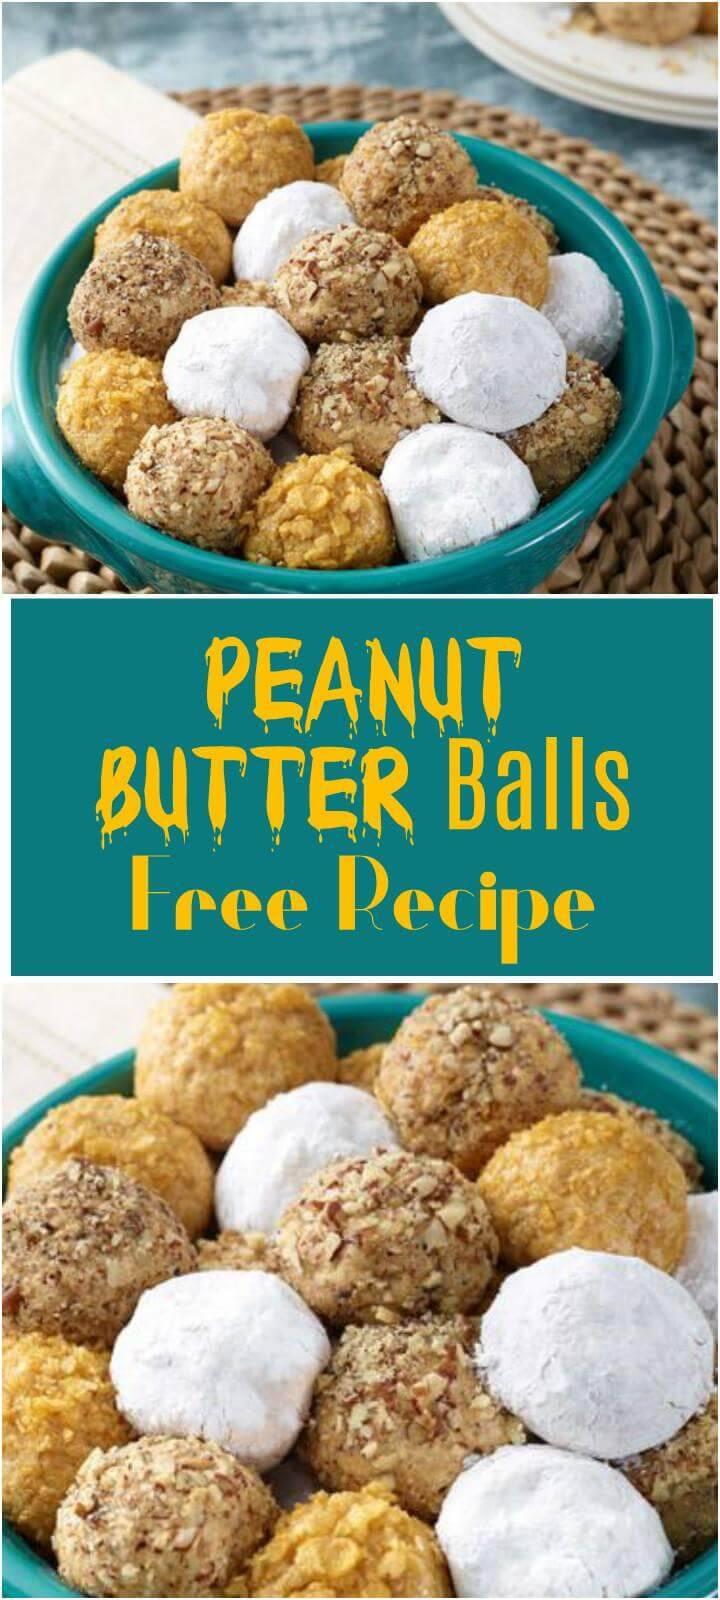 easy and quick peanut butter balls recipe